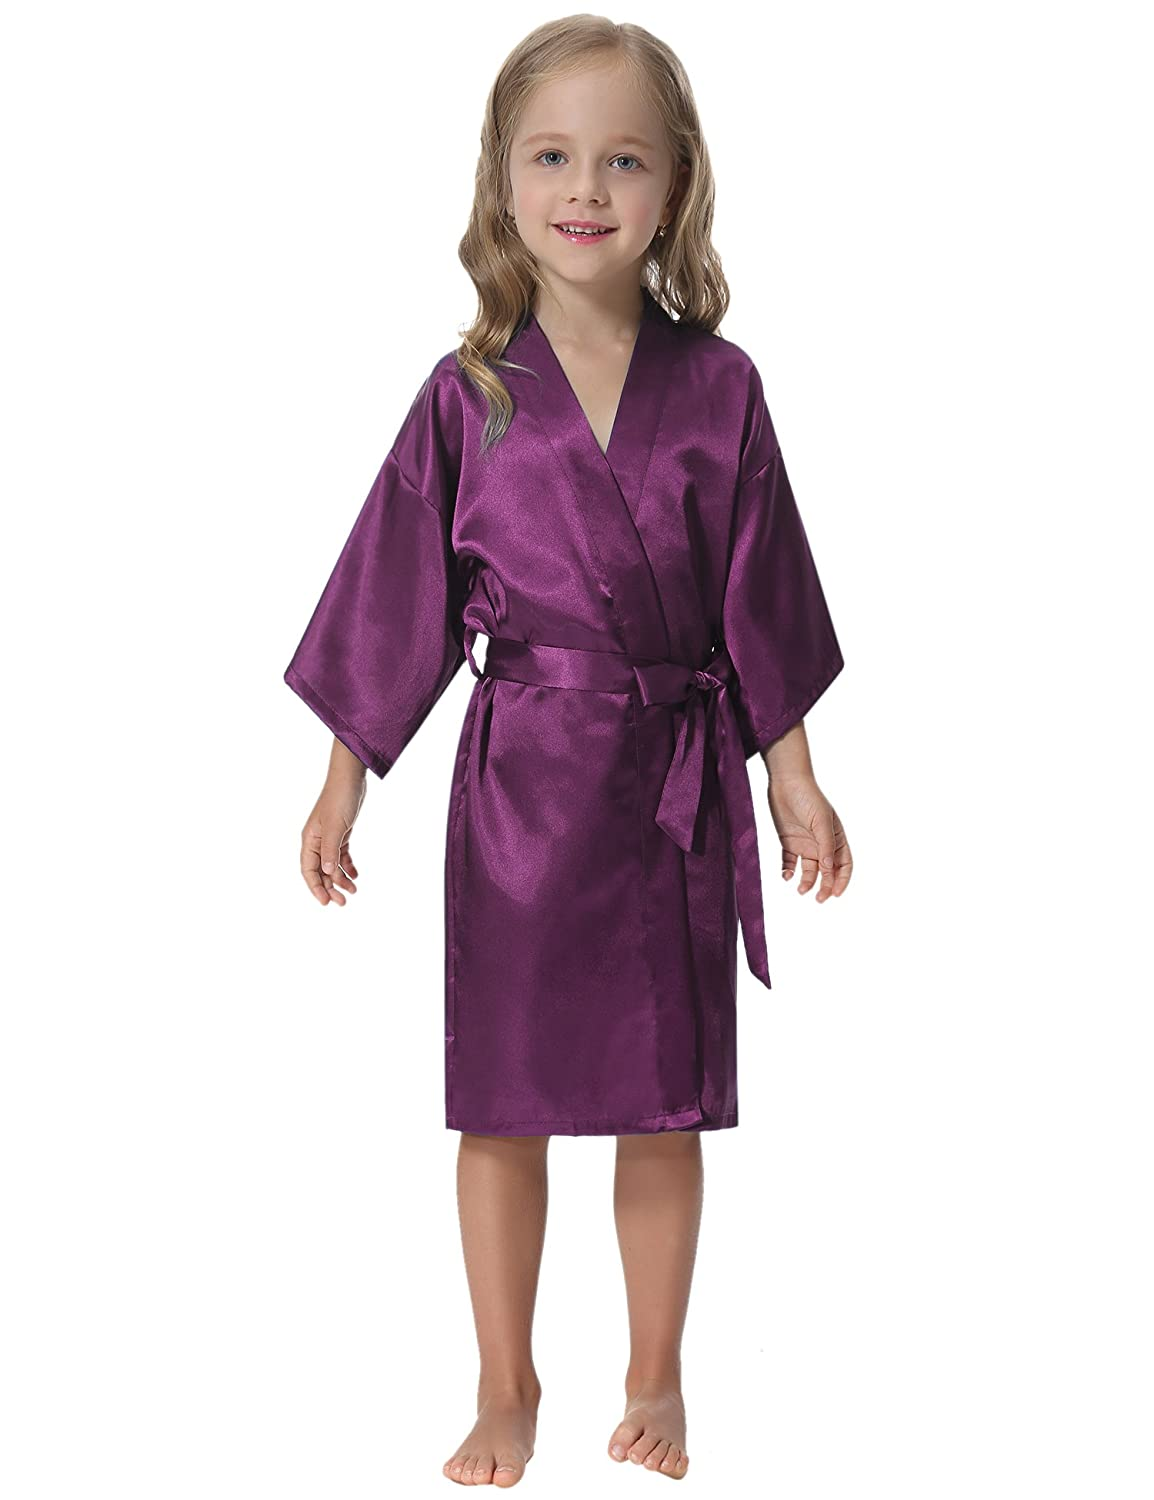 Aibrou Kid s Dressing Gown Satin Kimono Robe Bathrobe Nightgown for Spa  Wedding Birthday Party 999a7f49c